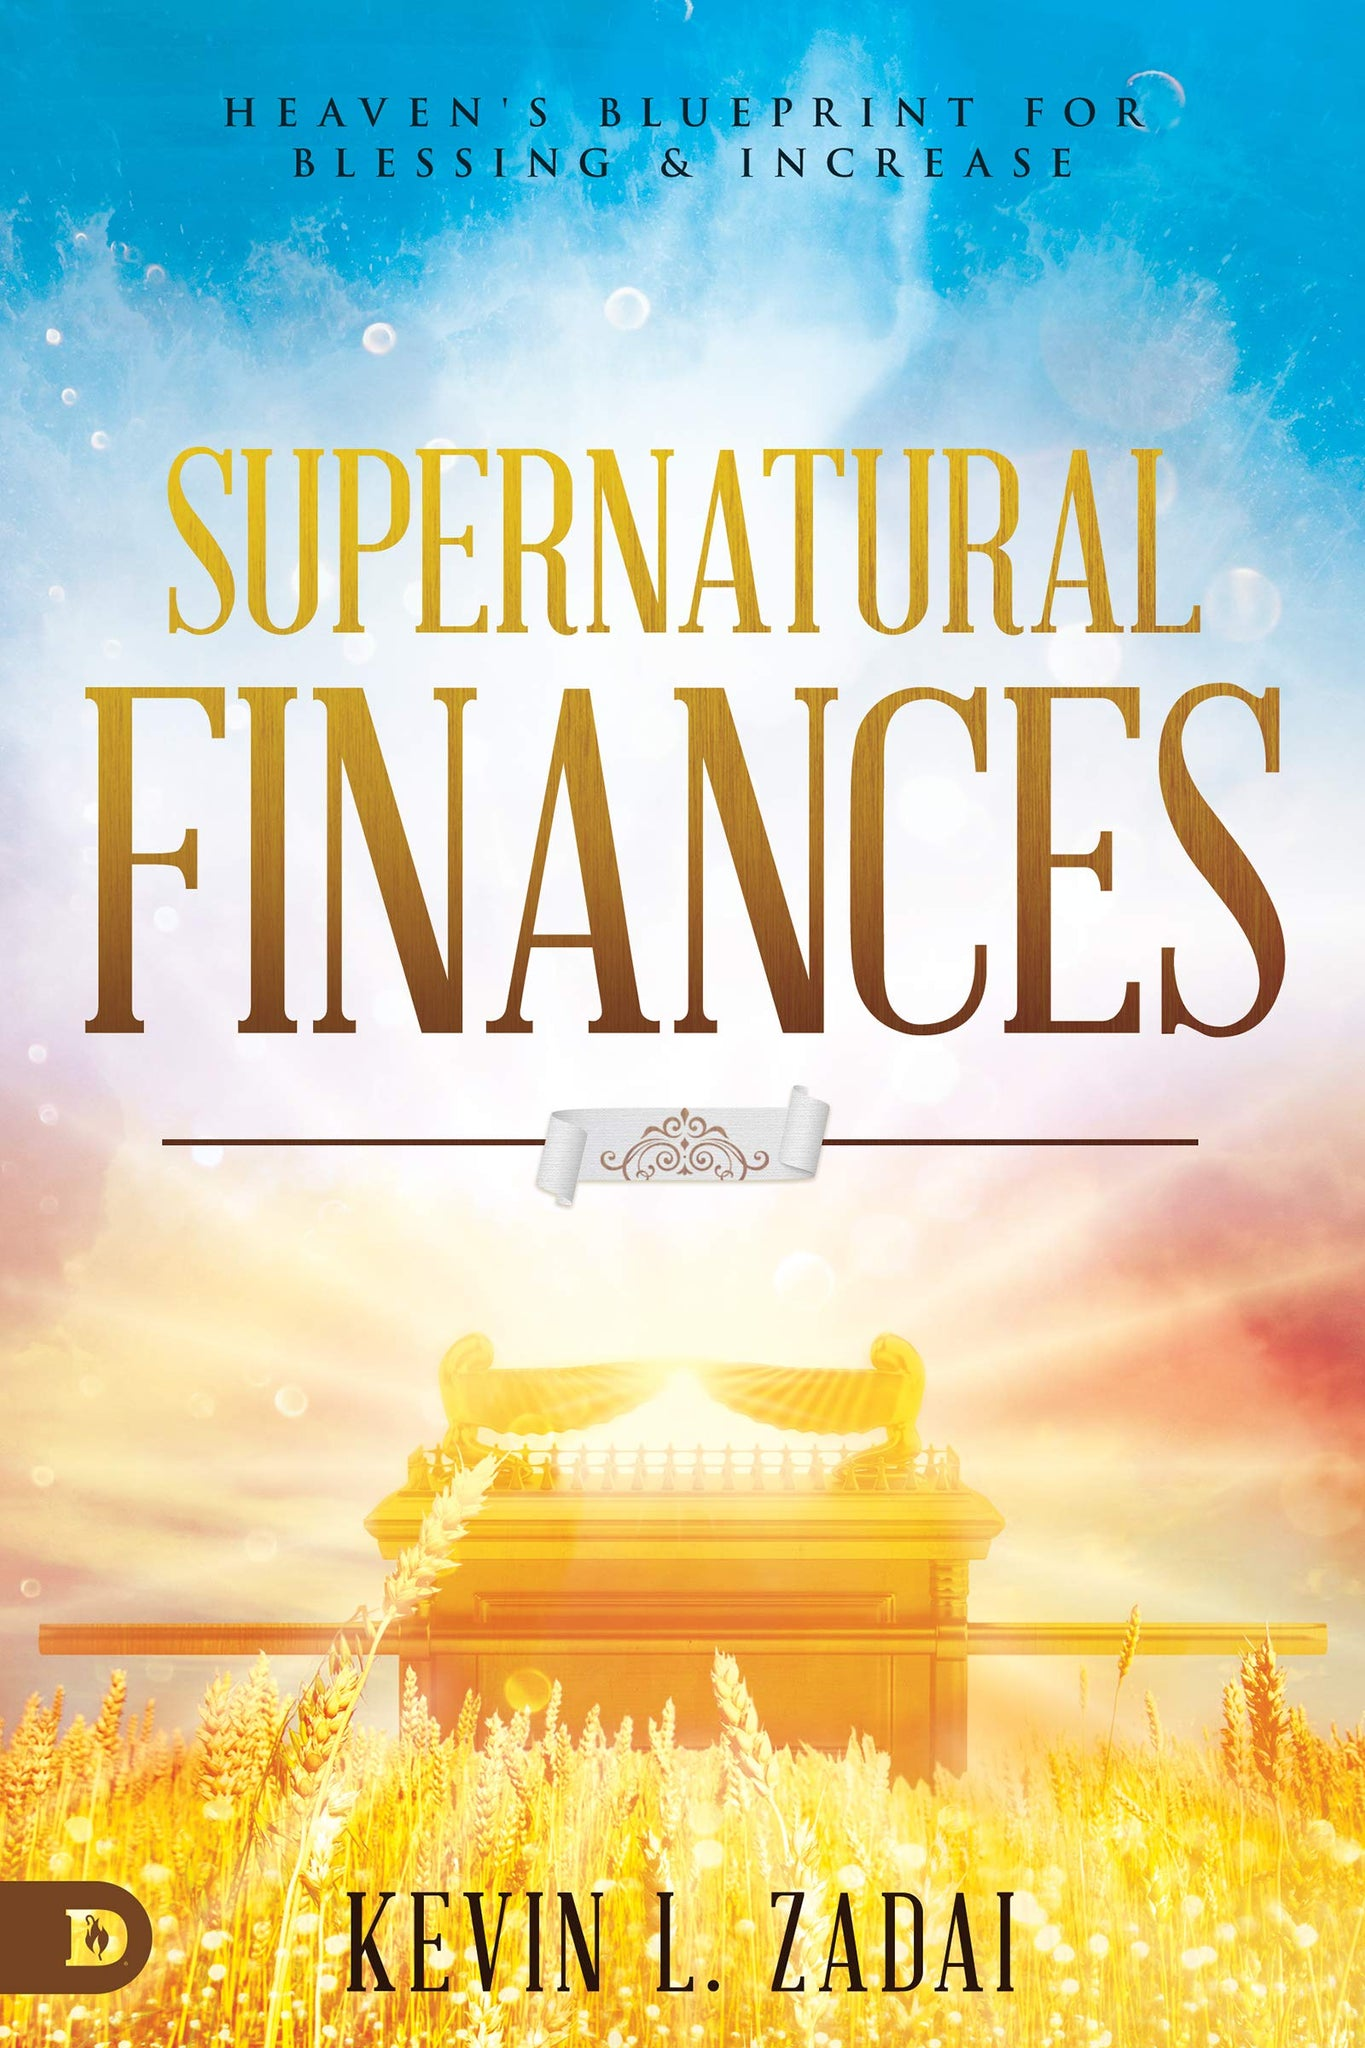 Supernatural Finances: Heaven's Blueprint for Blessing and Increase